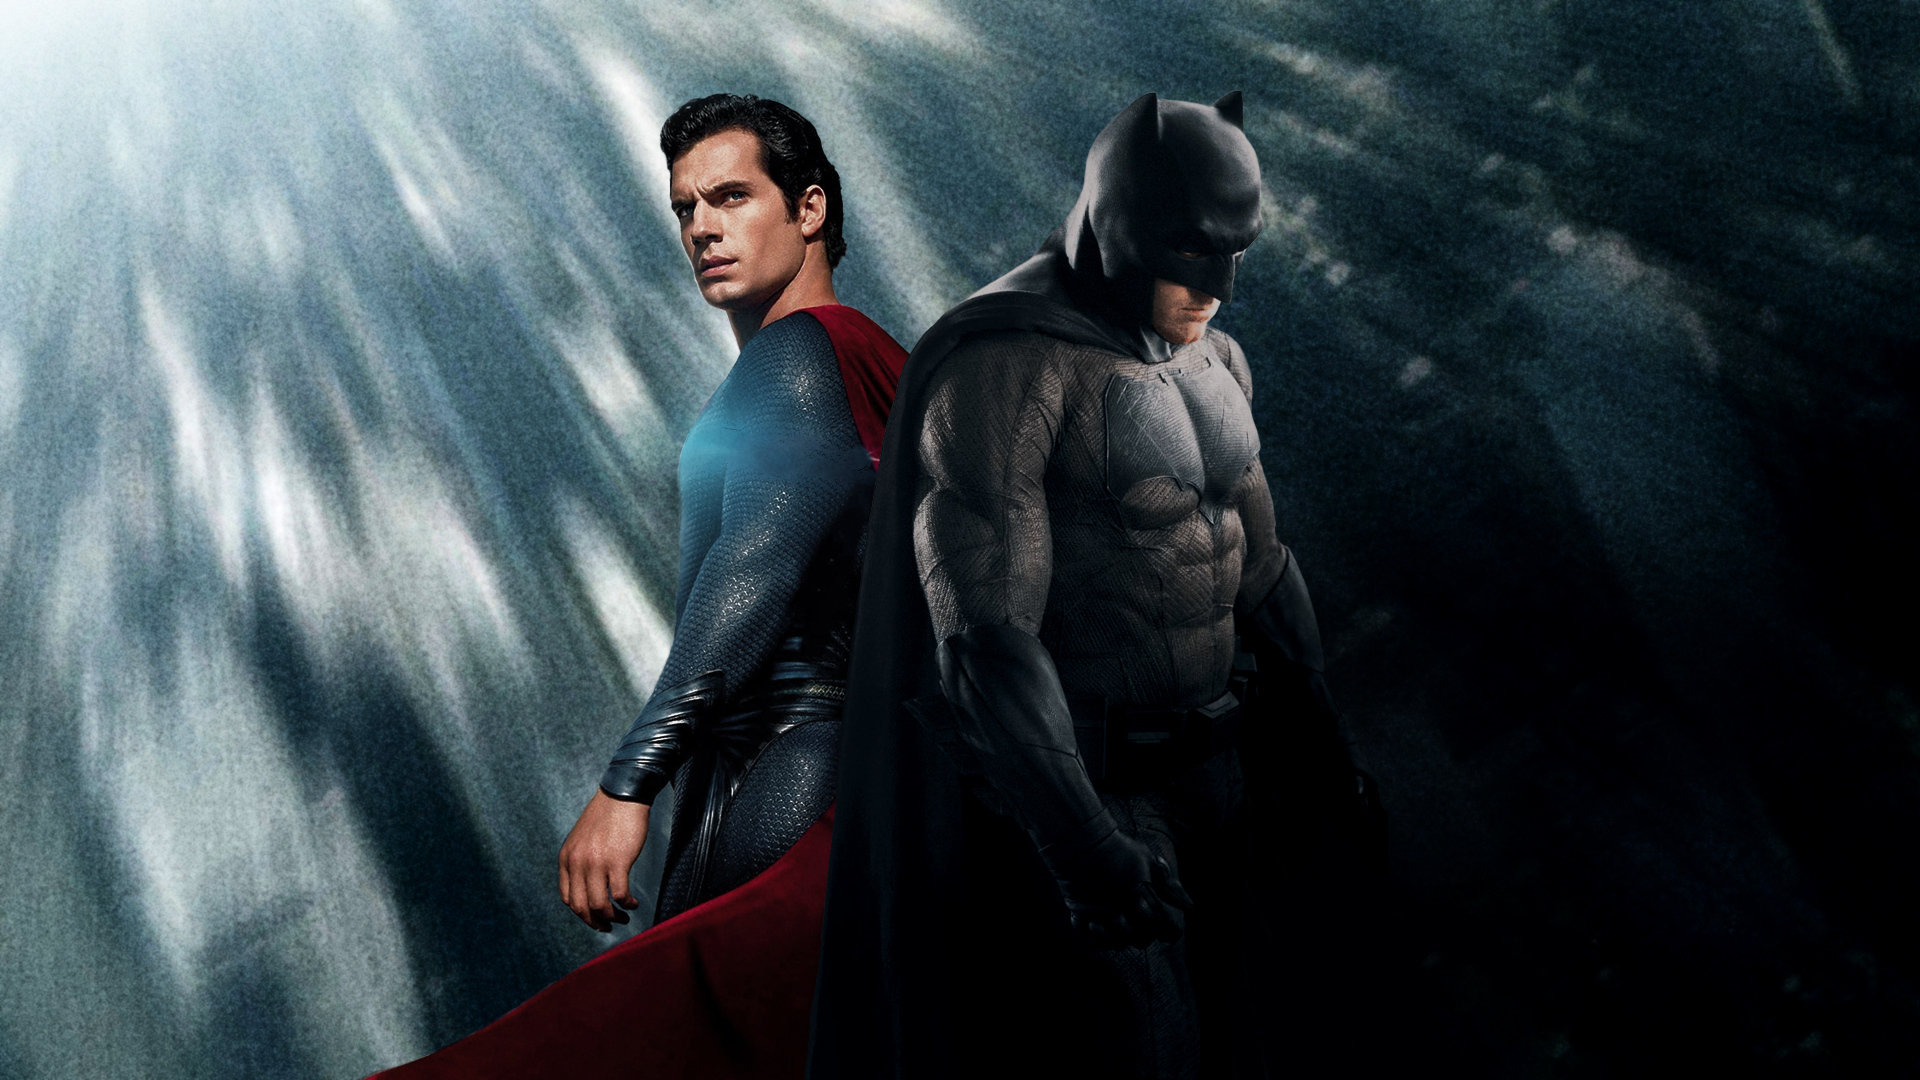 Best Batman V Superman Dawn Of Justice Wallpaper ID83835 For High Resolution Hd 1920x1080 PC